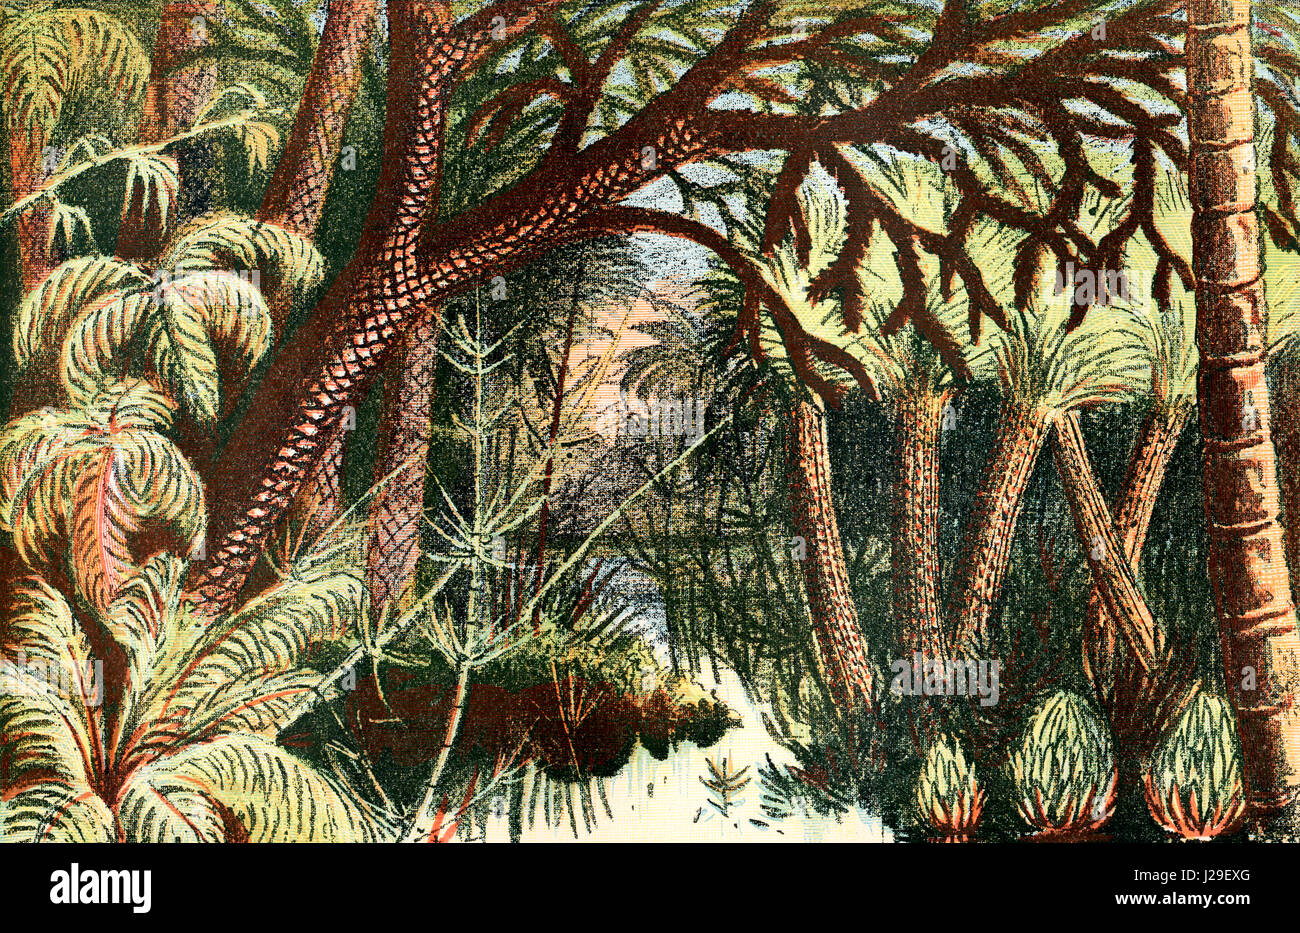 A forest from the Carboniferous era.  From The World's Foundations or Geology for Beginners, published 1883. - Stock Image